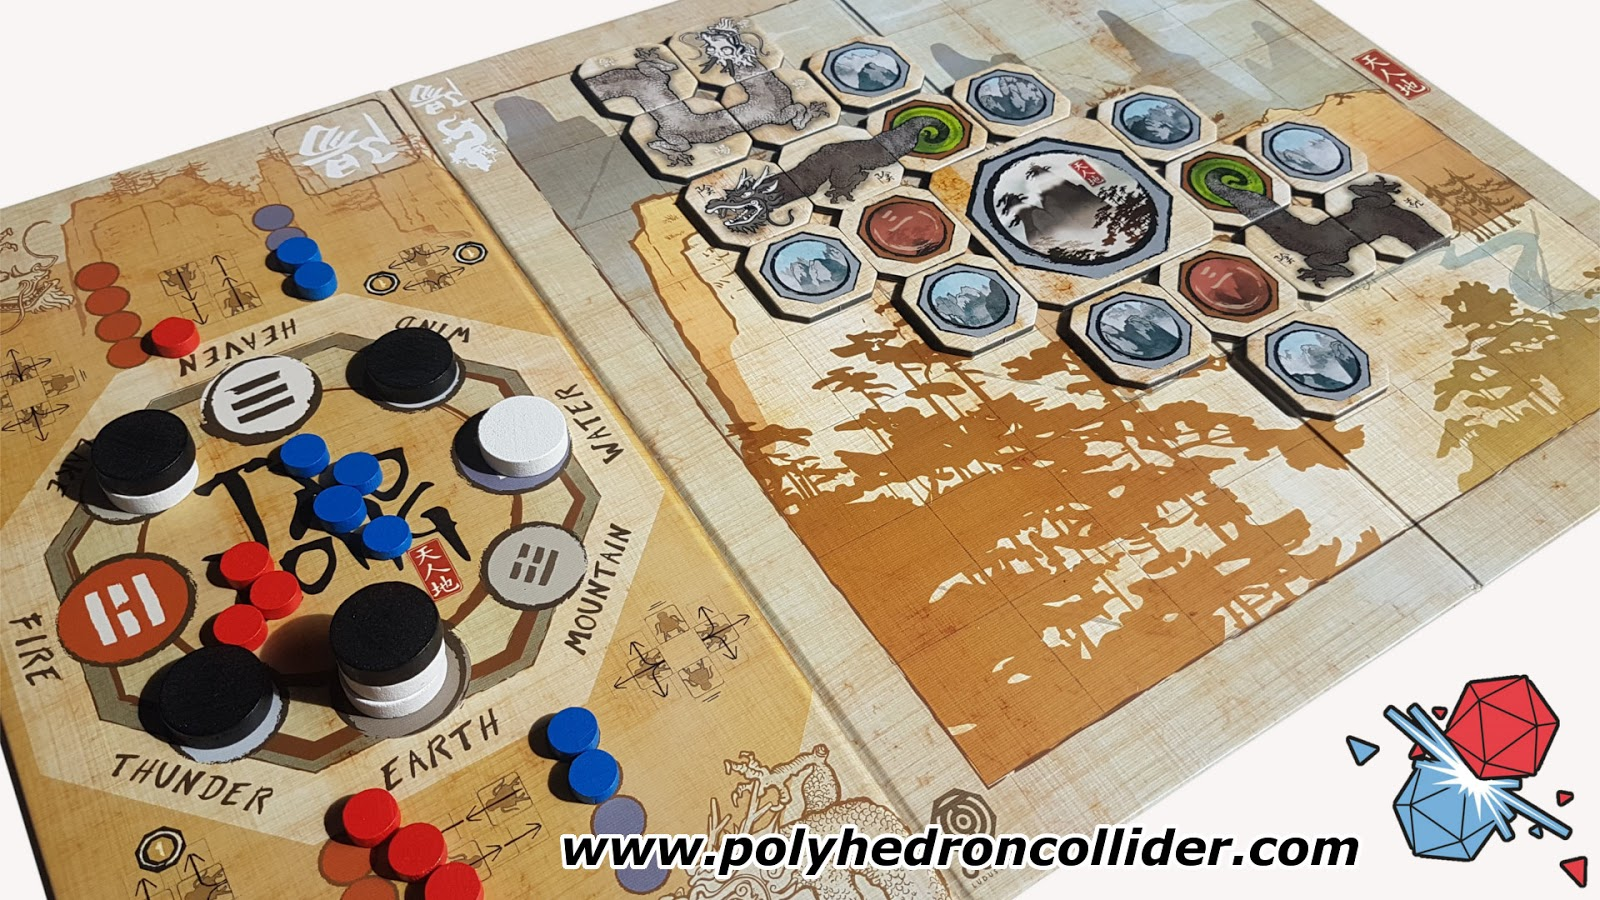 Polyhedron Collider Boardgame News